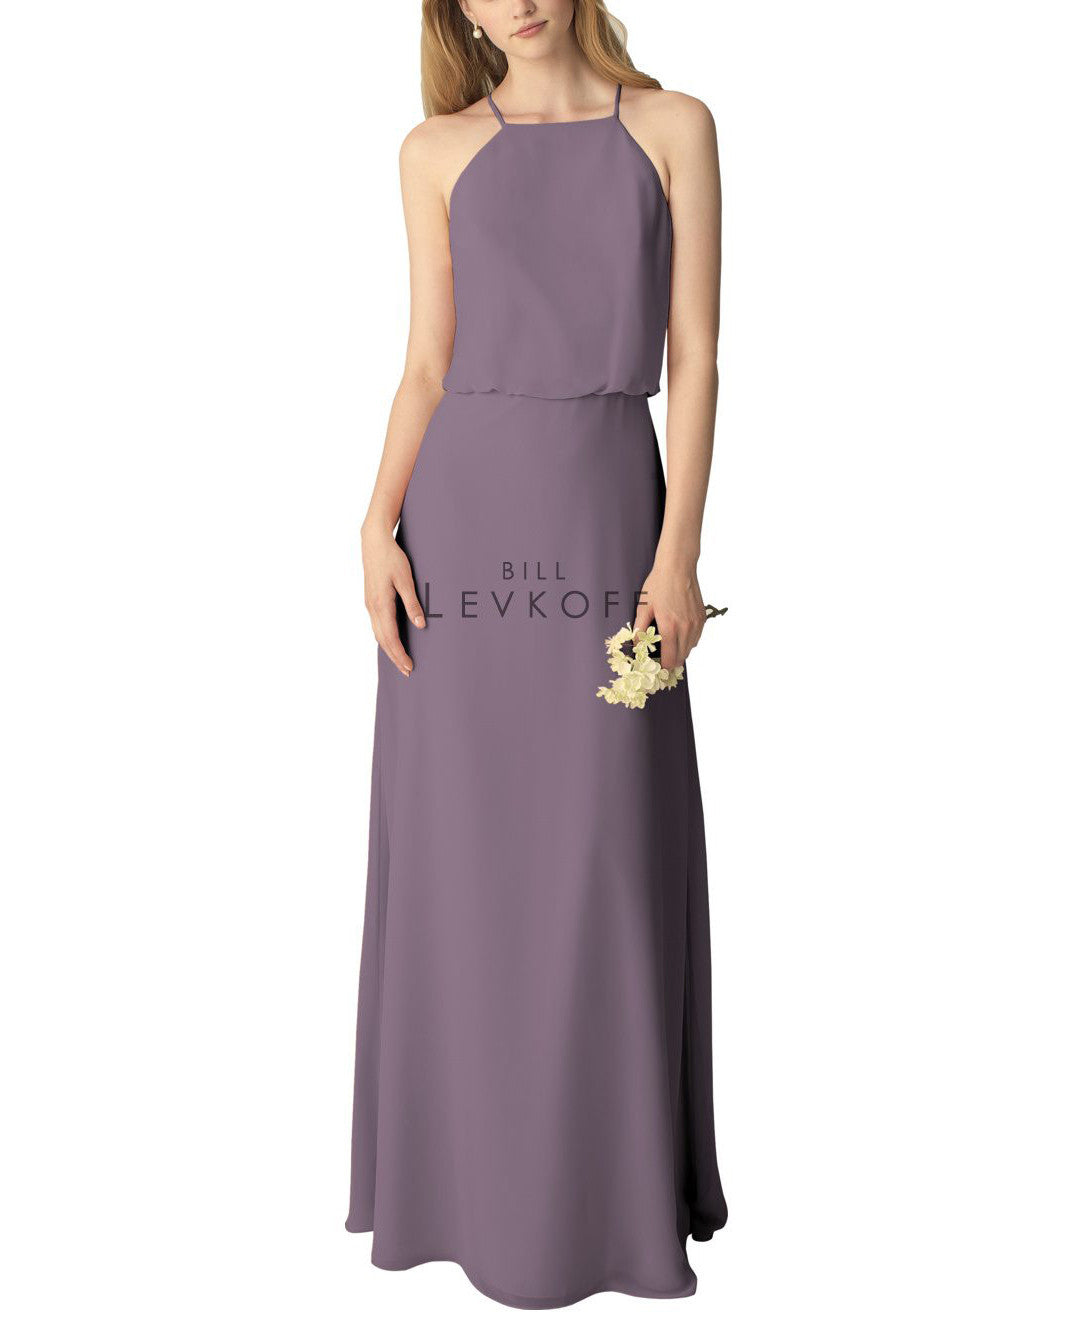 Bill Levkoff Collection Style 1265 Bridesmaid Dress | Brideside